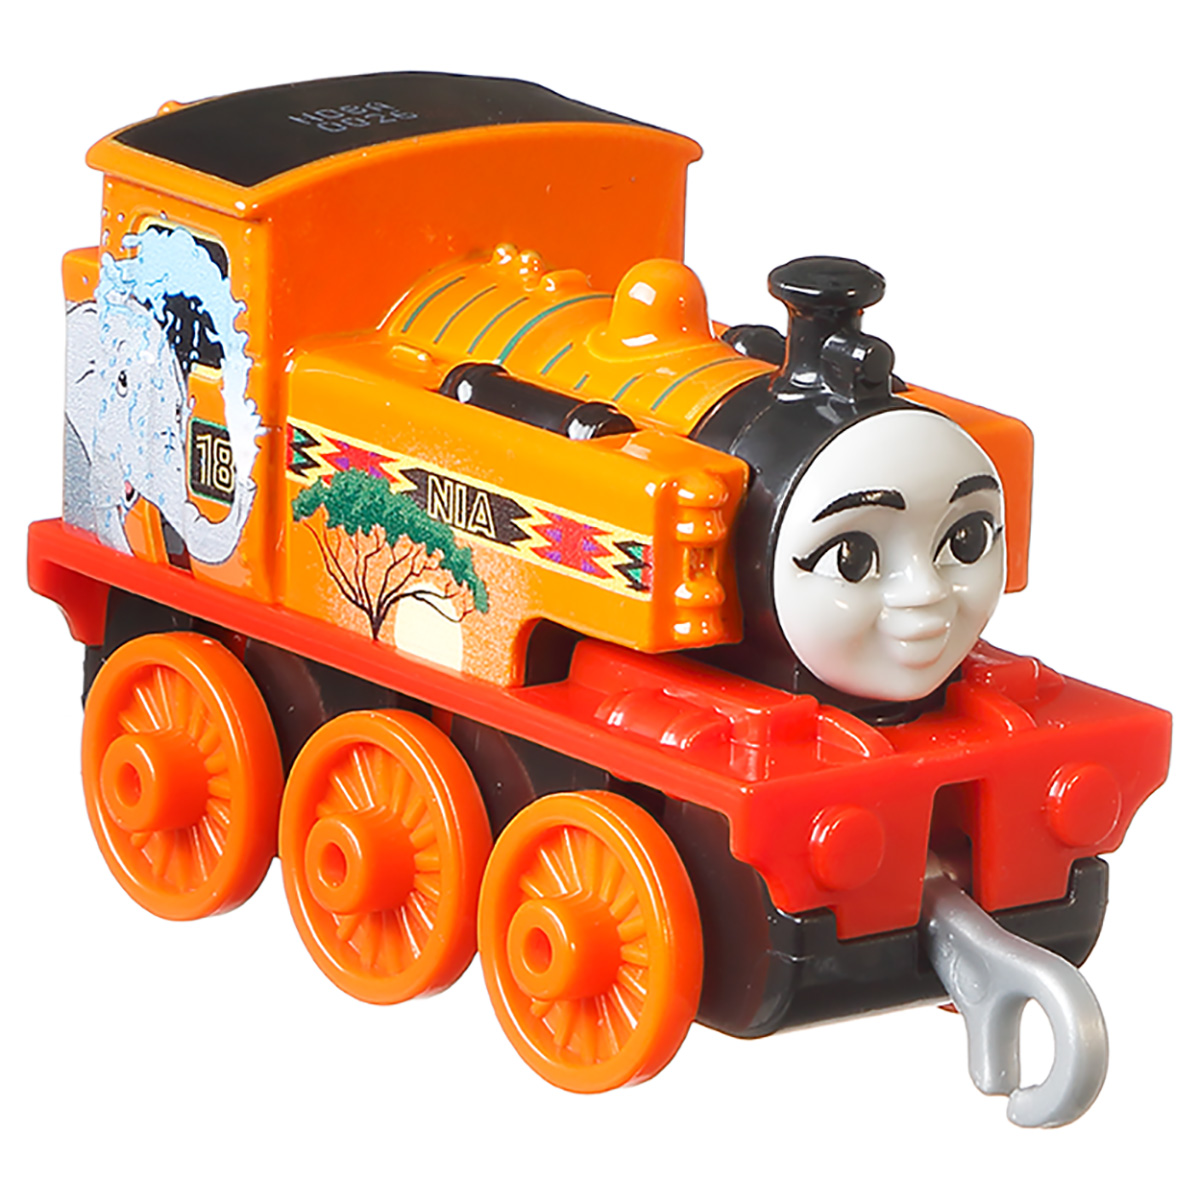 Trenulet Thomas and Friends Safari, Nia GLK64